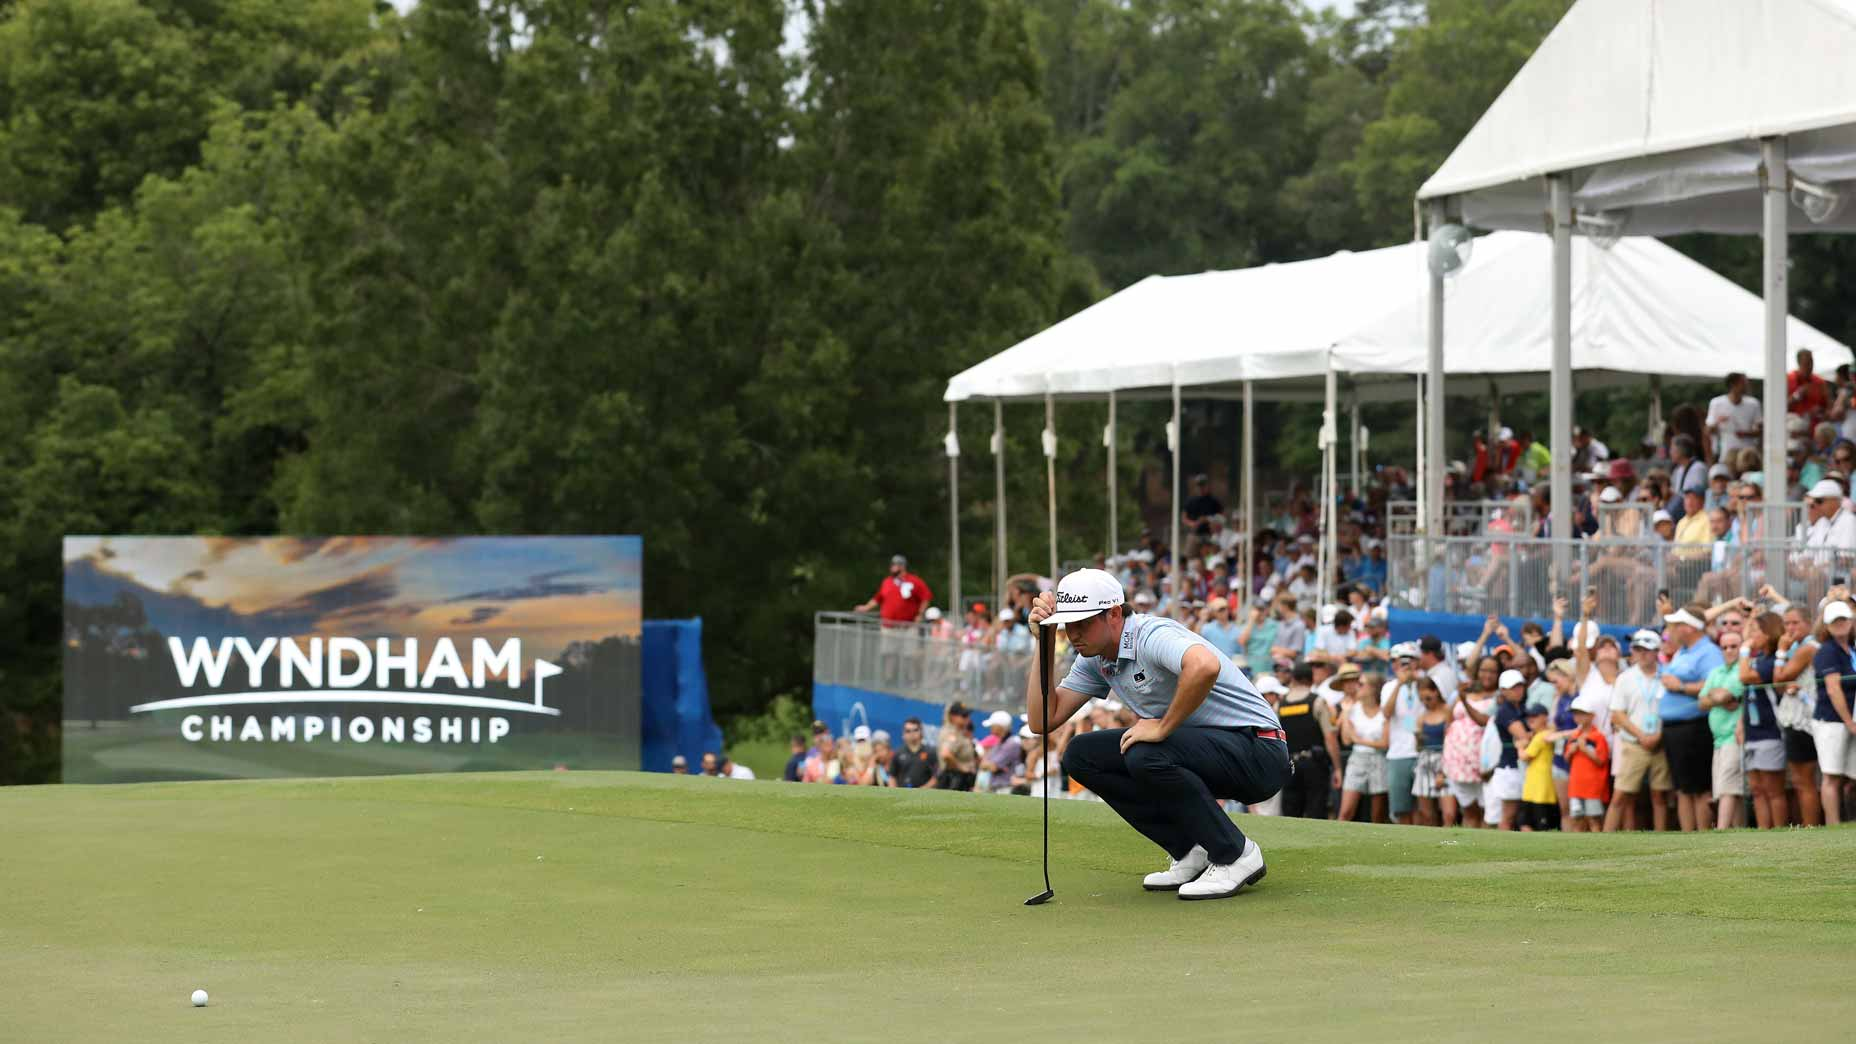 Pro golfer J.T. Poston at 2019 Wyndham Championship